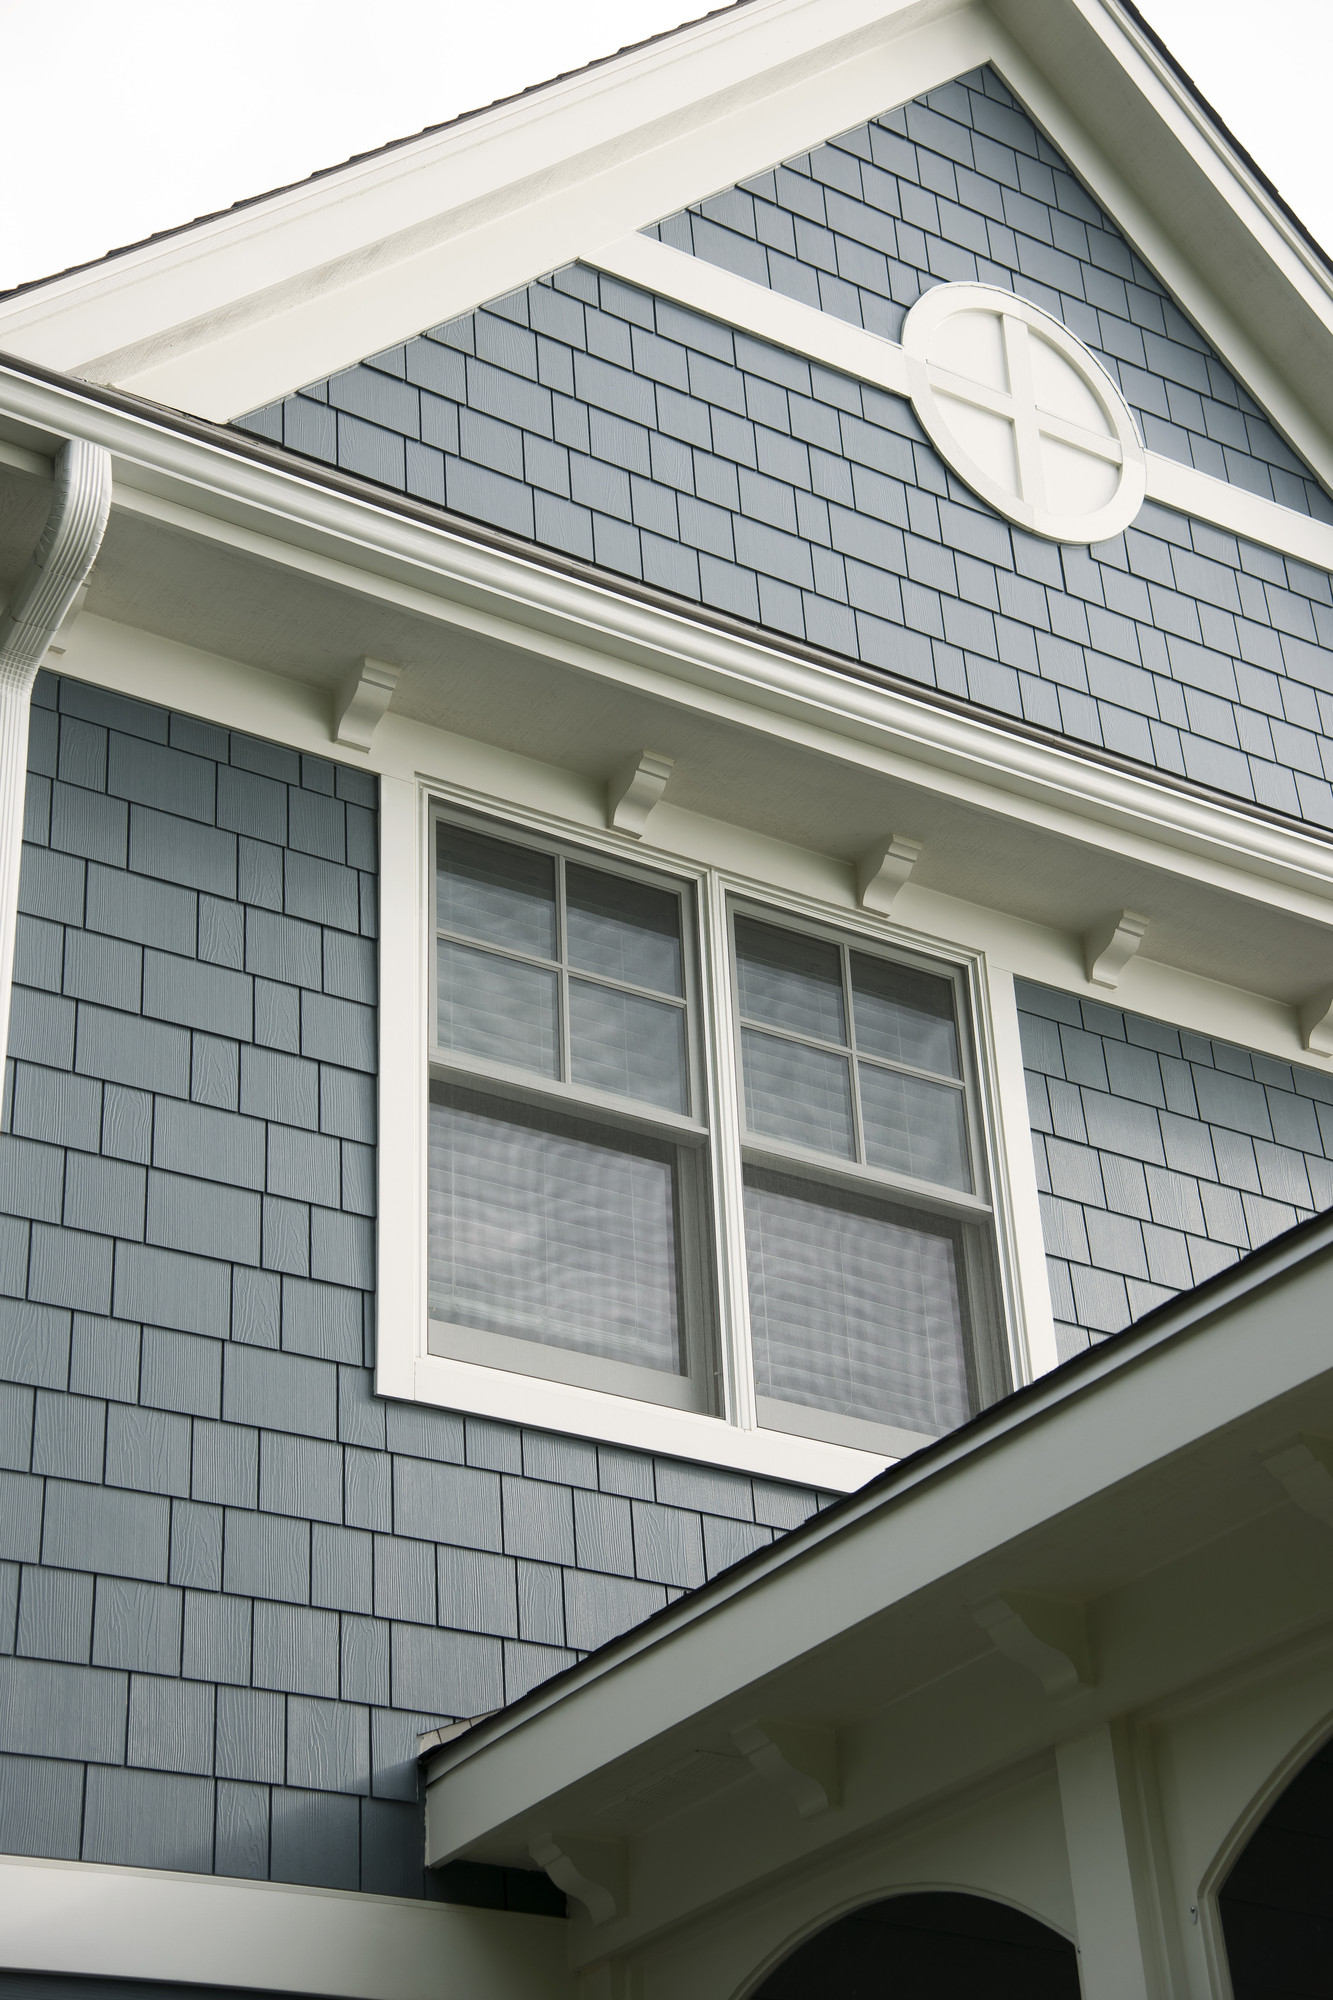 Hardi Plank Siding >> James Hardie Siding- Siding Repair and Installation in Northern Virginia